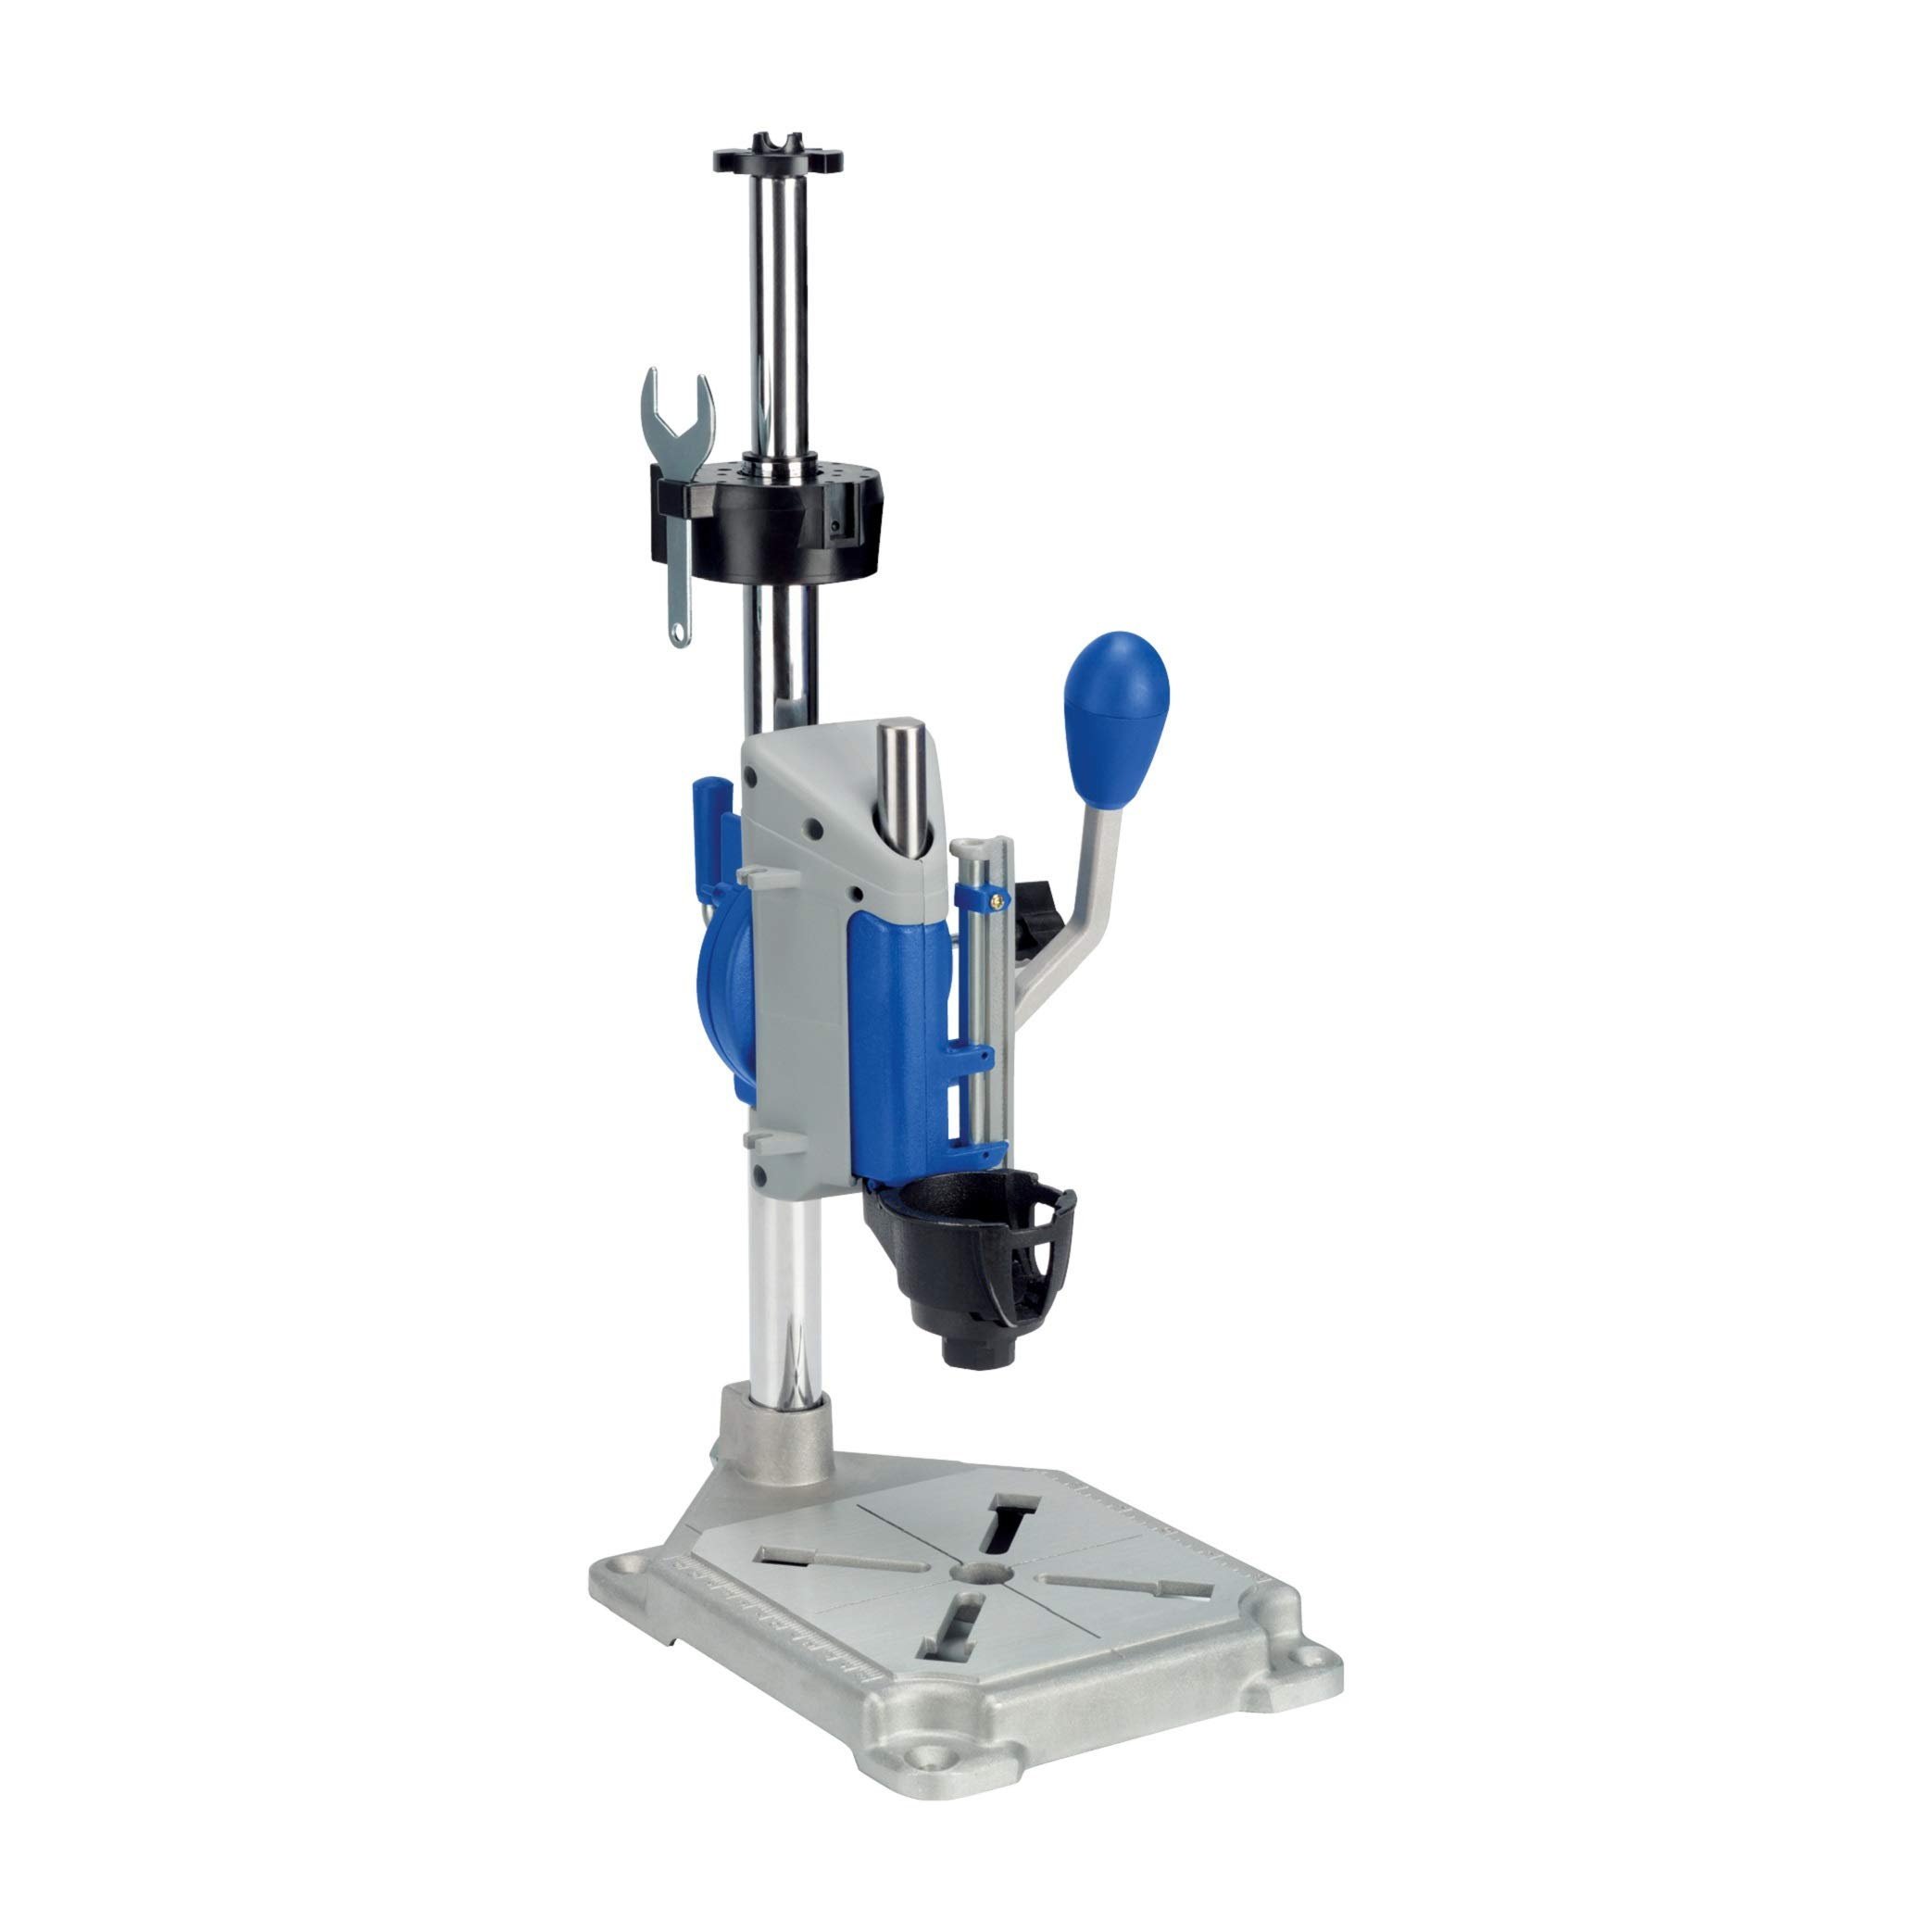 Dremel 220 Workstation - 2-in1 Multi Purpose Drill Press & Rotary Tool Holder for Bench Drilling